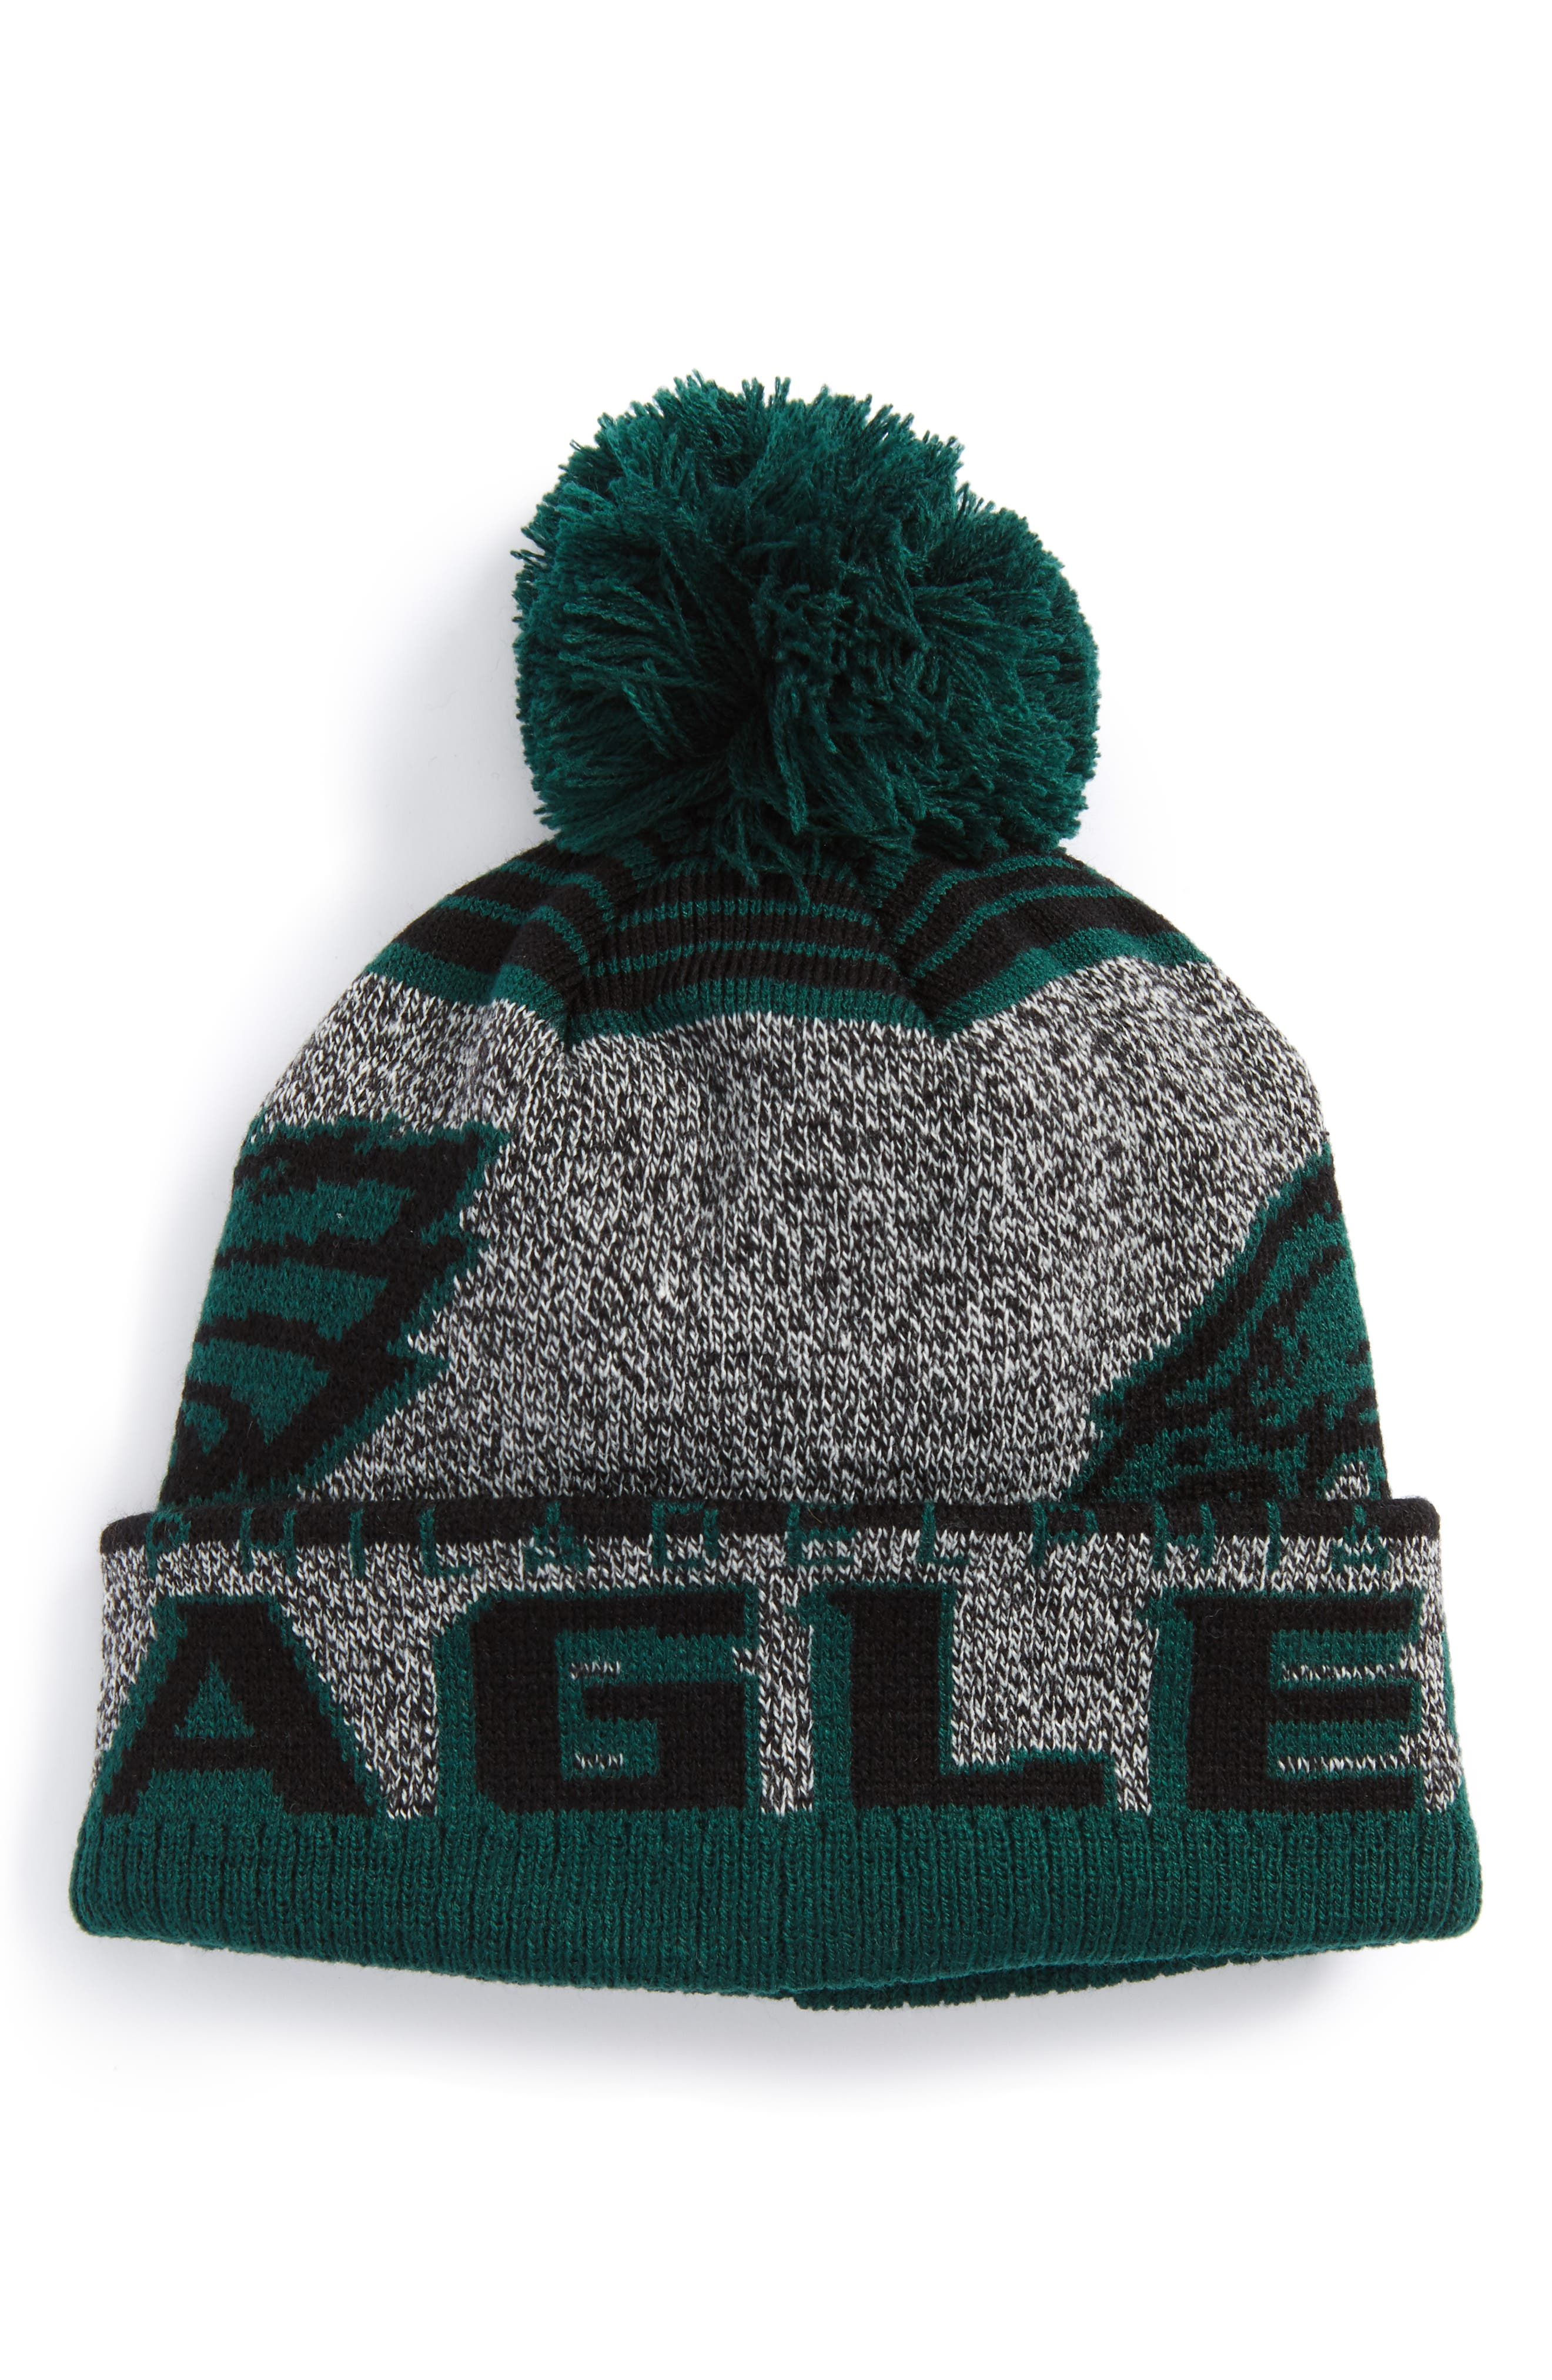 quality design 4ad7d f482c ... new style nfl knit hats canada kitchen 946b3 513a8